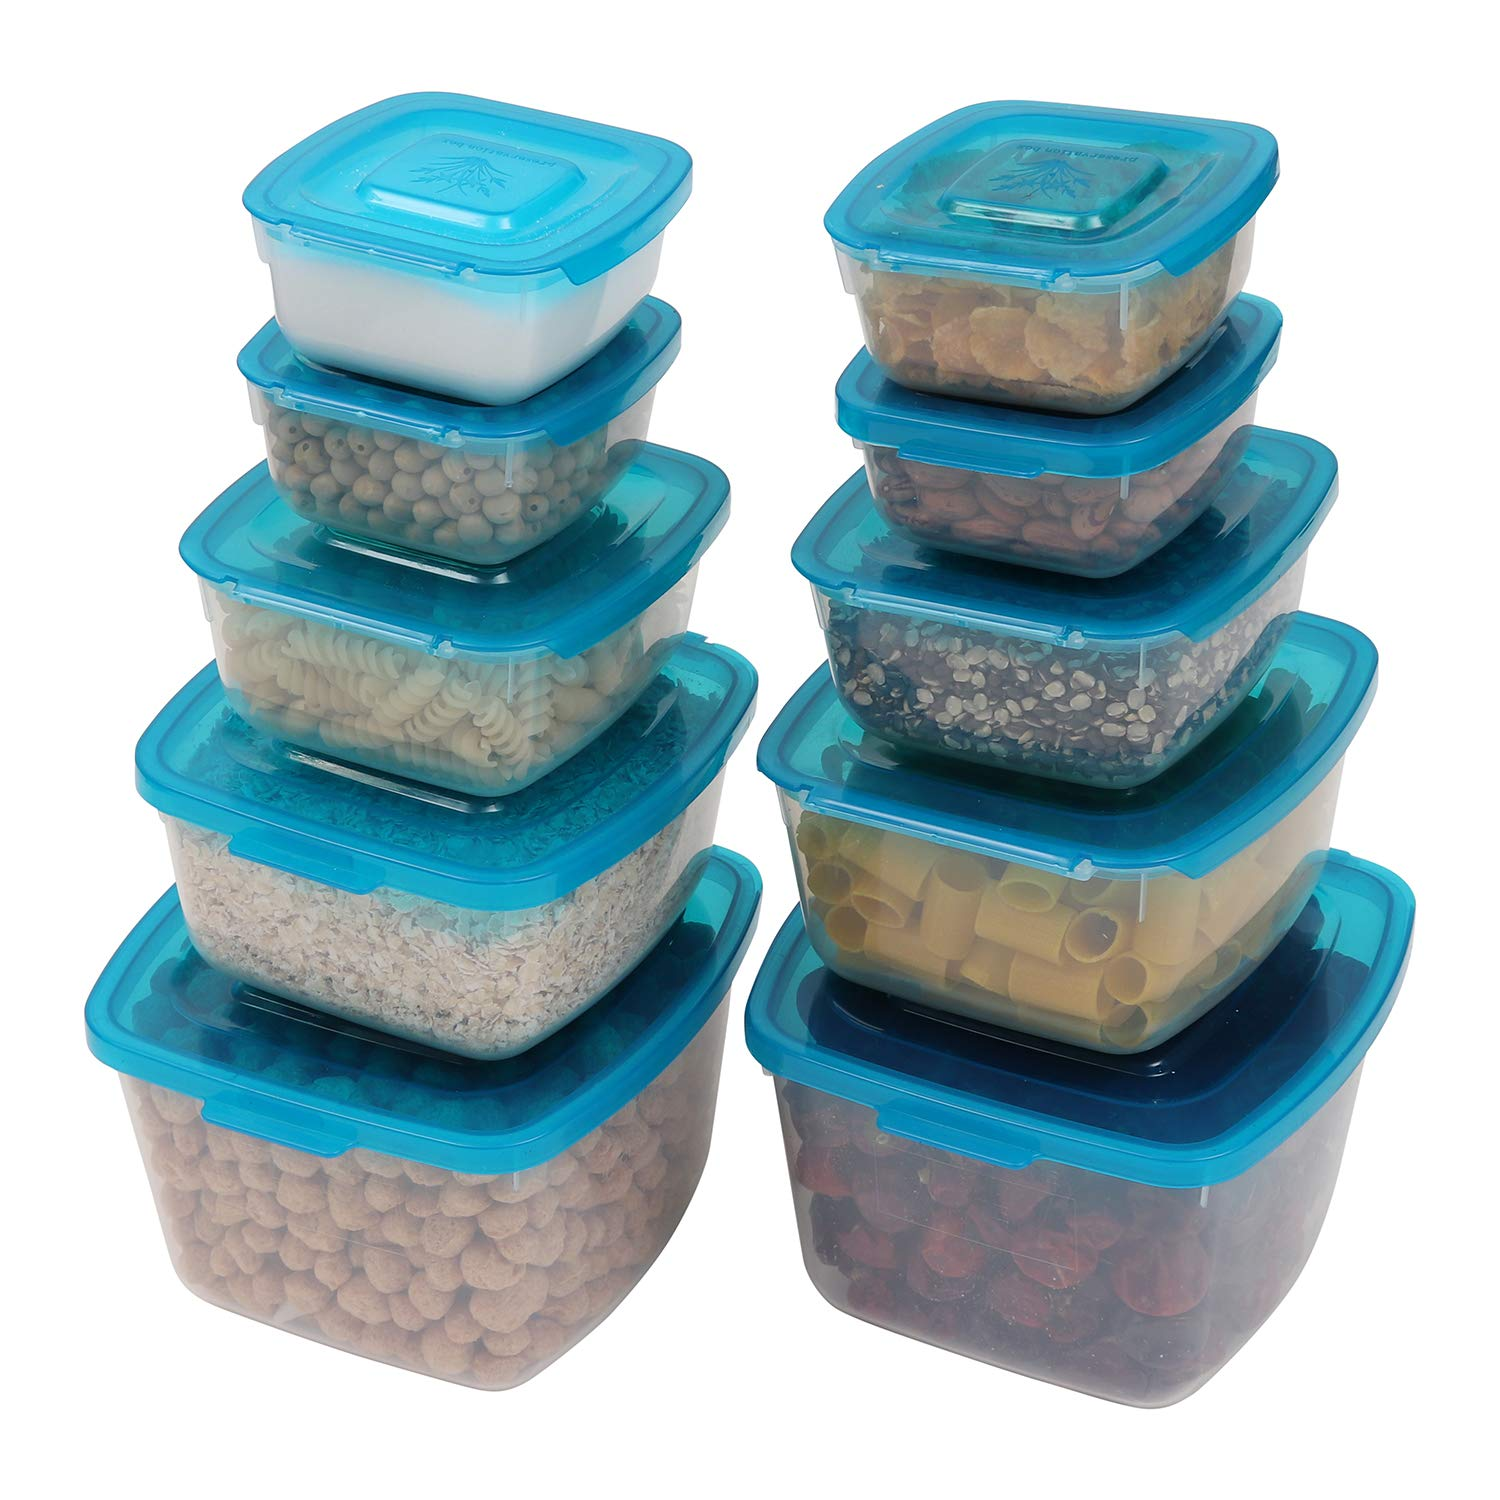 Kurtzy Food Storage Containers/Plastic Kitchen Storage Containers 10 Pack – Airtight Transparent Hinged Kitchen Storage Organizers for easy storage of Vegetable, Dry Food, Cereal, Grain Rice & More HA-JT-106X2